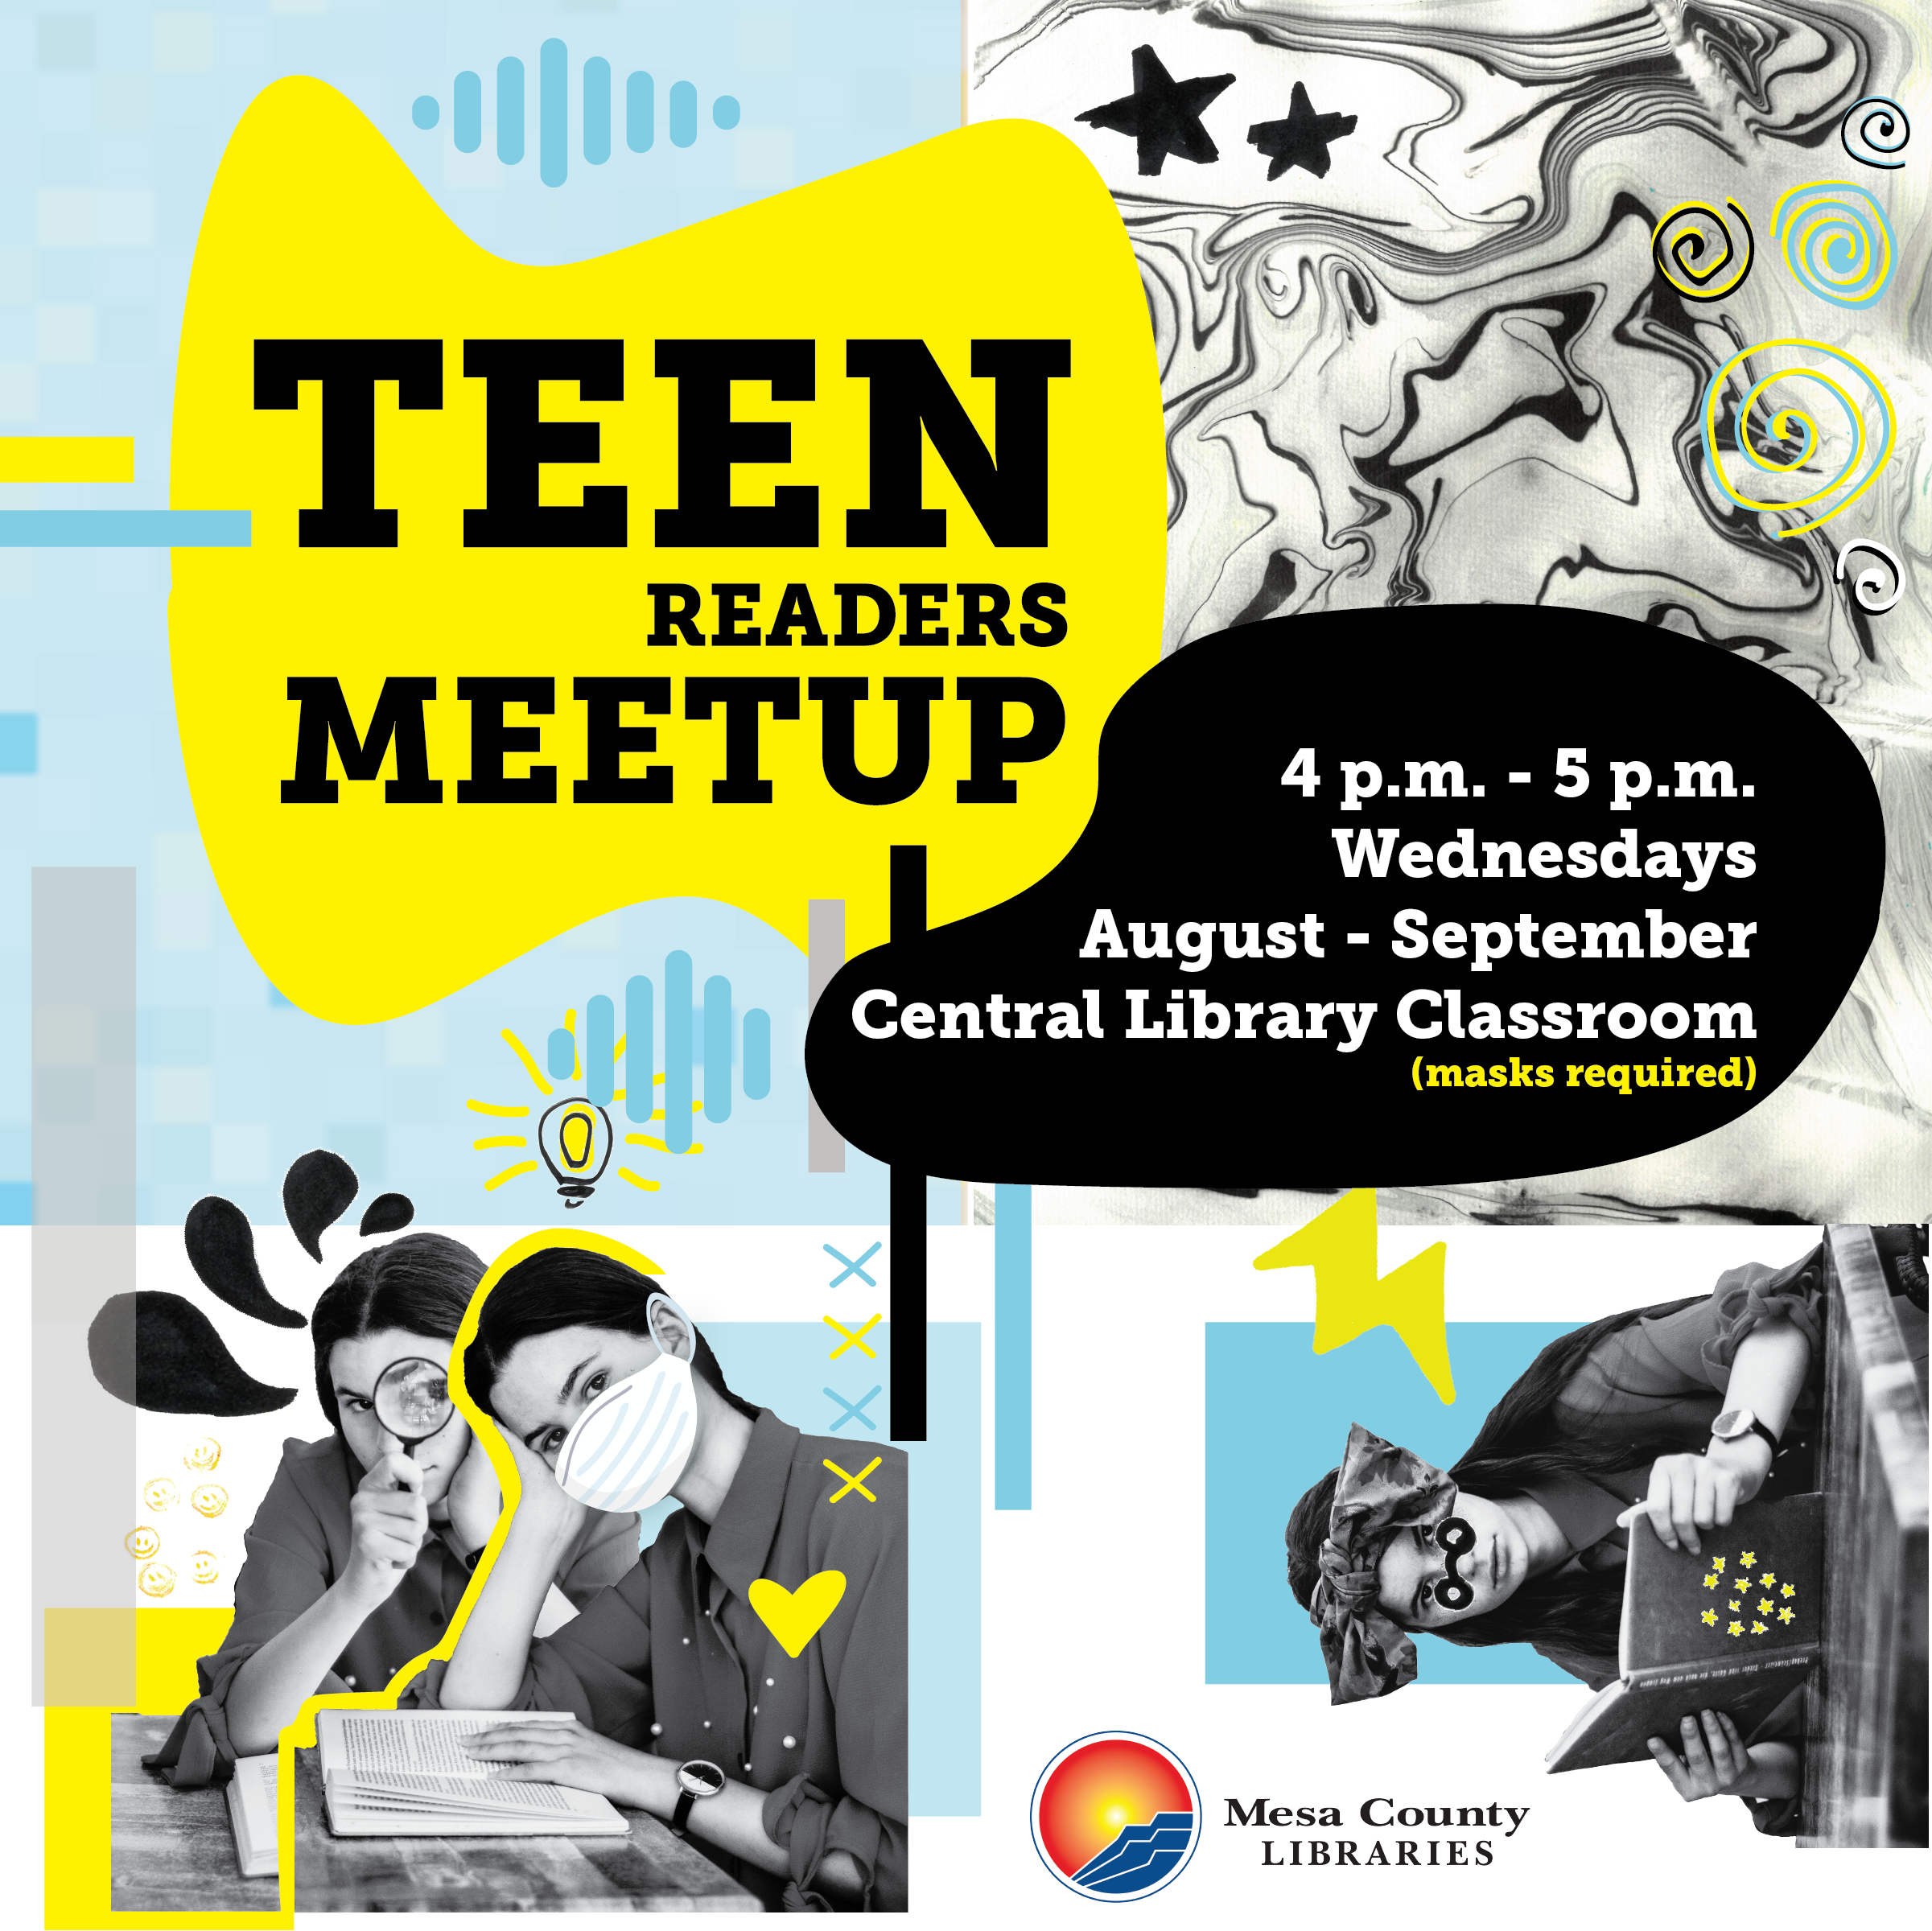 Teen Readers Meetup